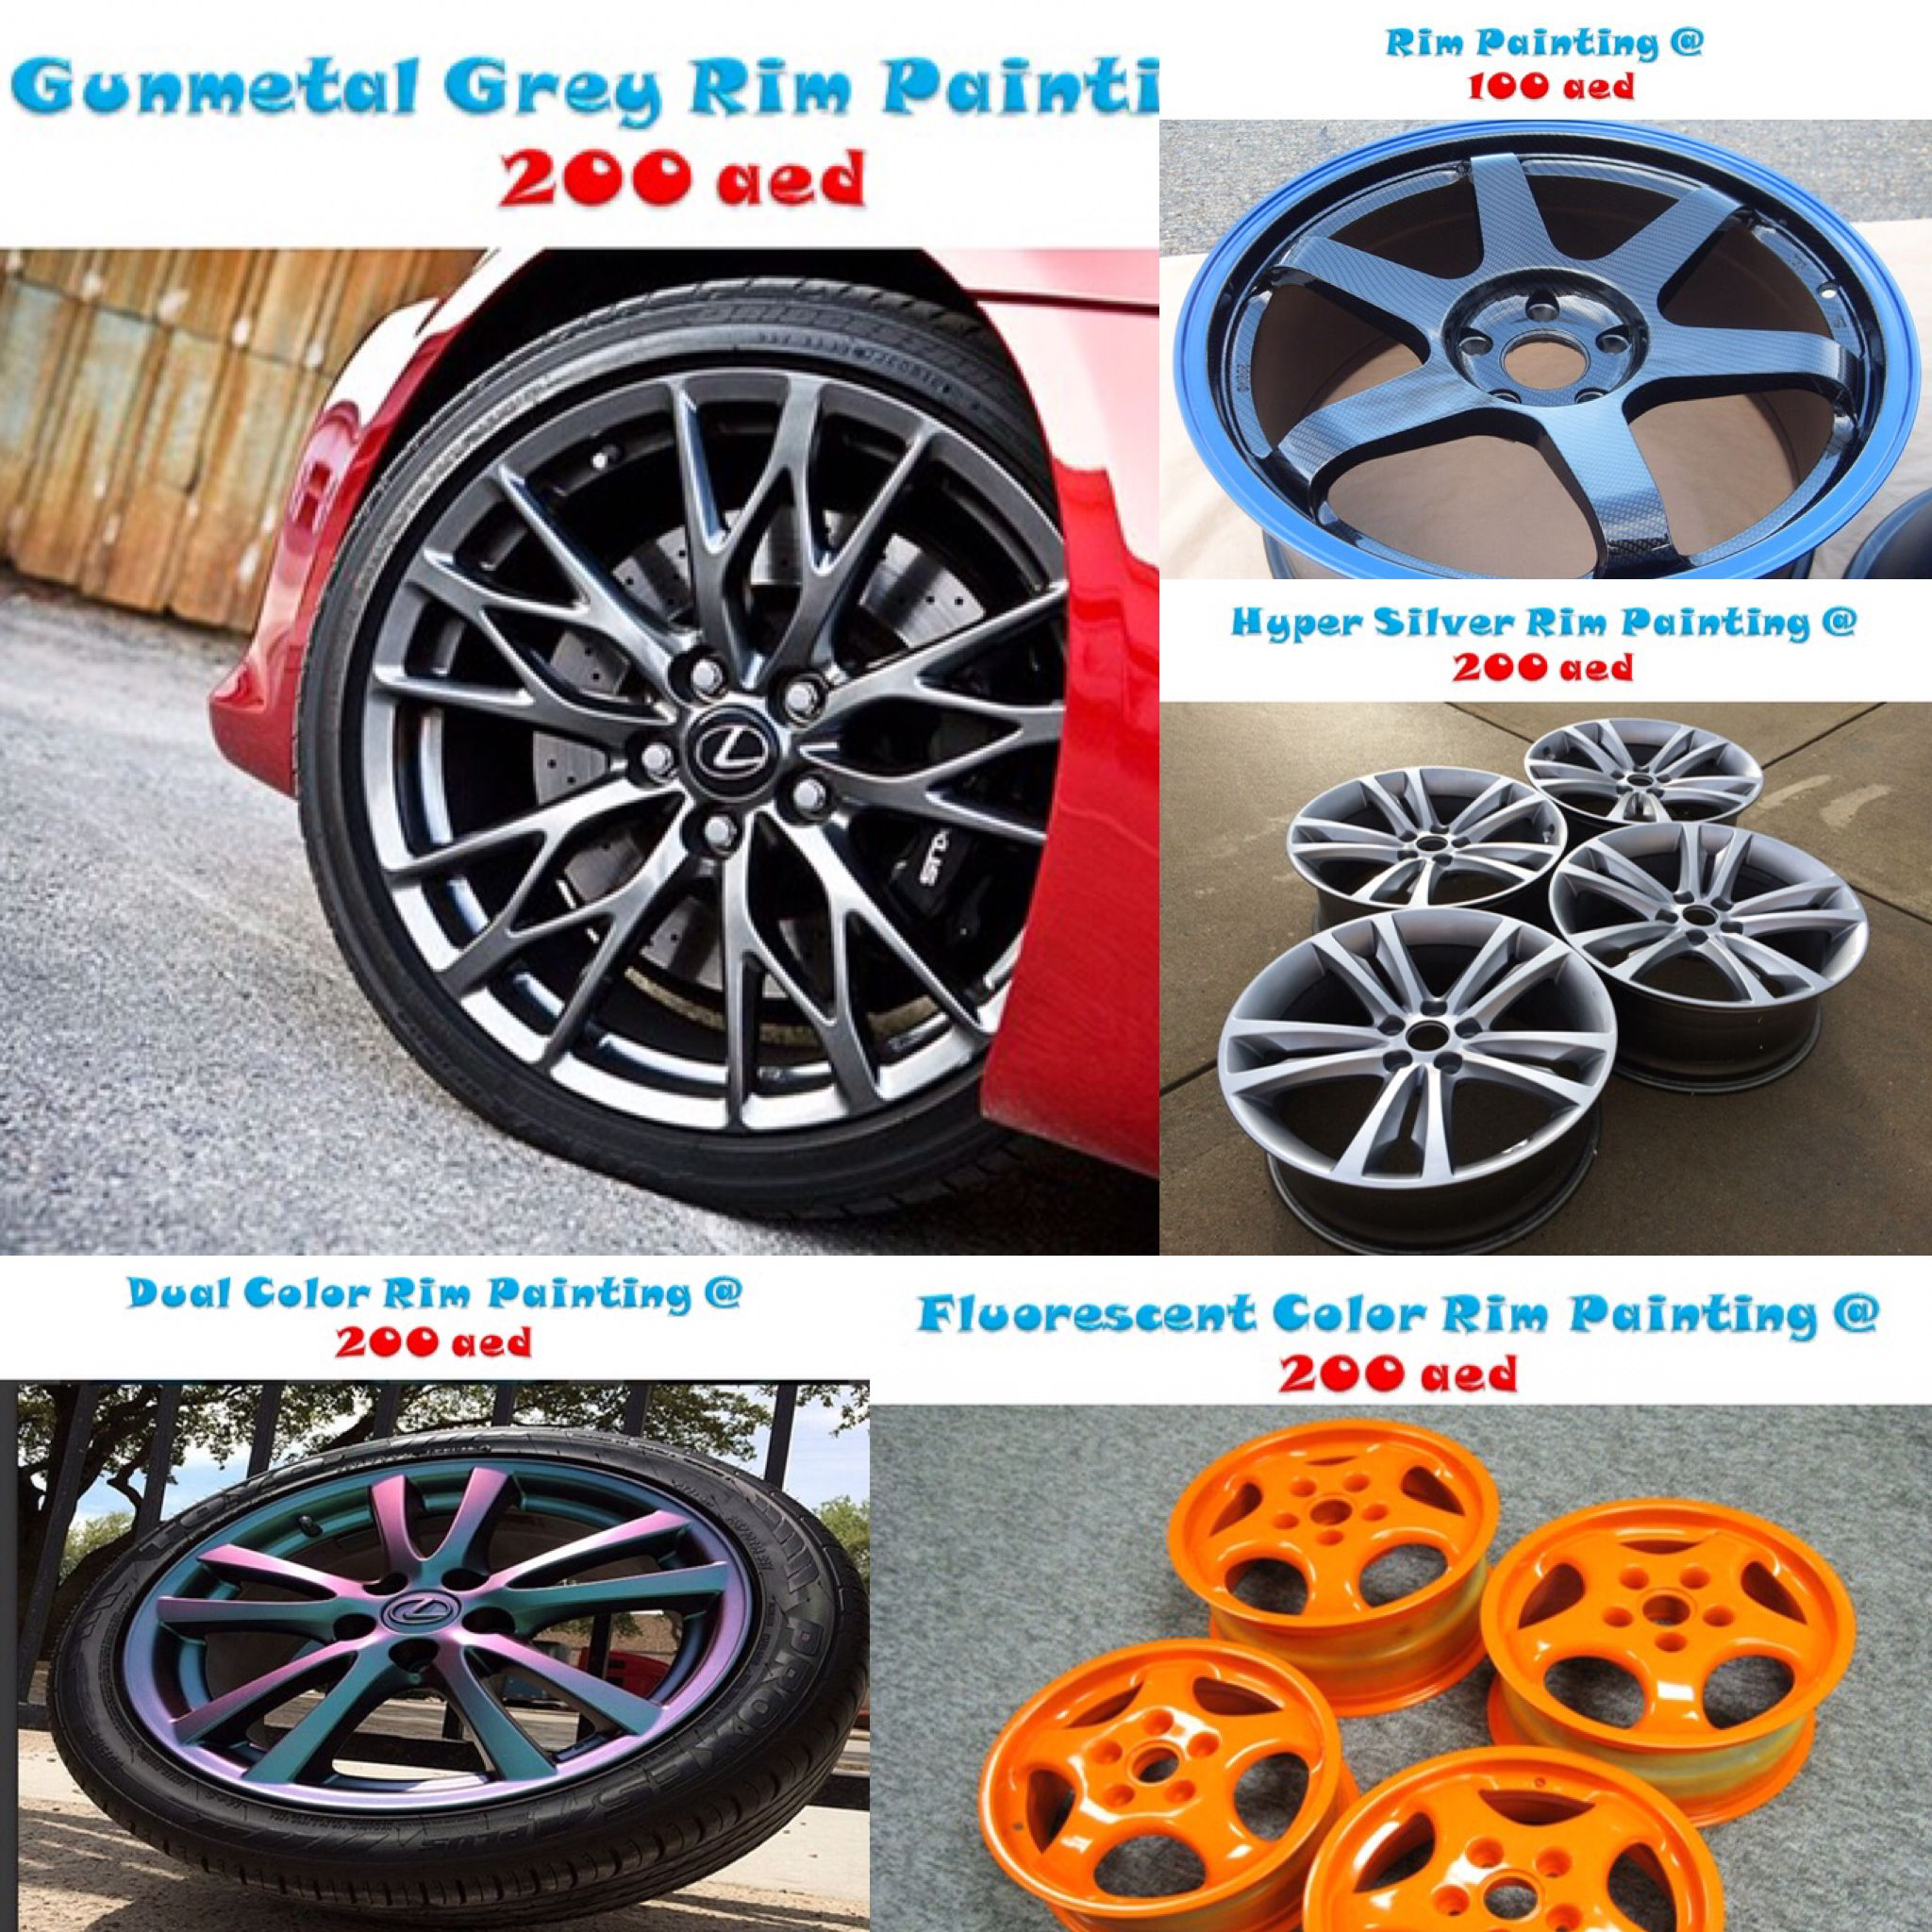 At Iskandar Garage We Offer You The Best Choices You Can Color Match With Your Car Rim Painting 1 0 0 Aed Hypersi Impala Car Wheel Car